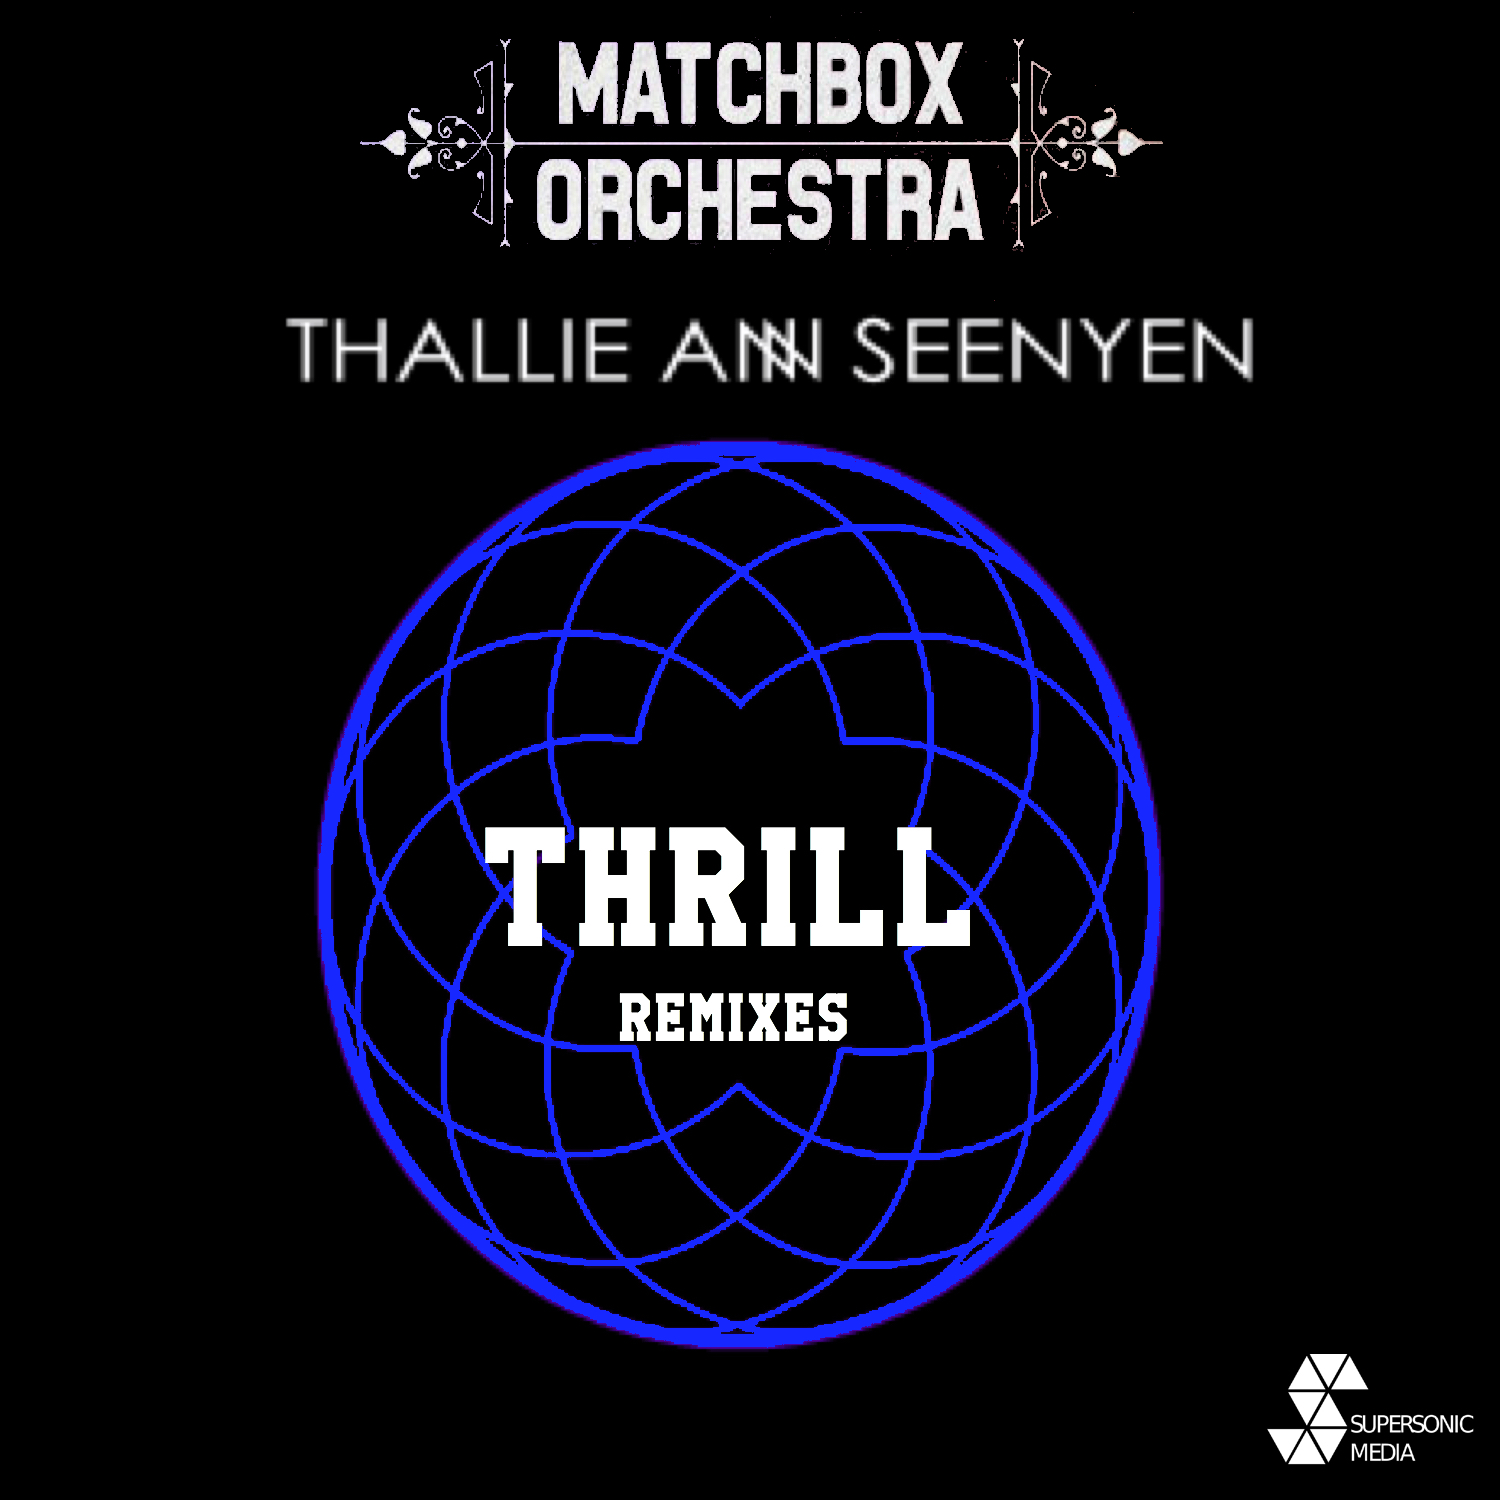 Matchbox Orchestra & Thallie Ann Seenyen - Thrill (Remixes)